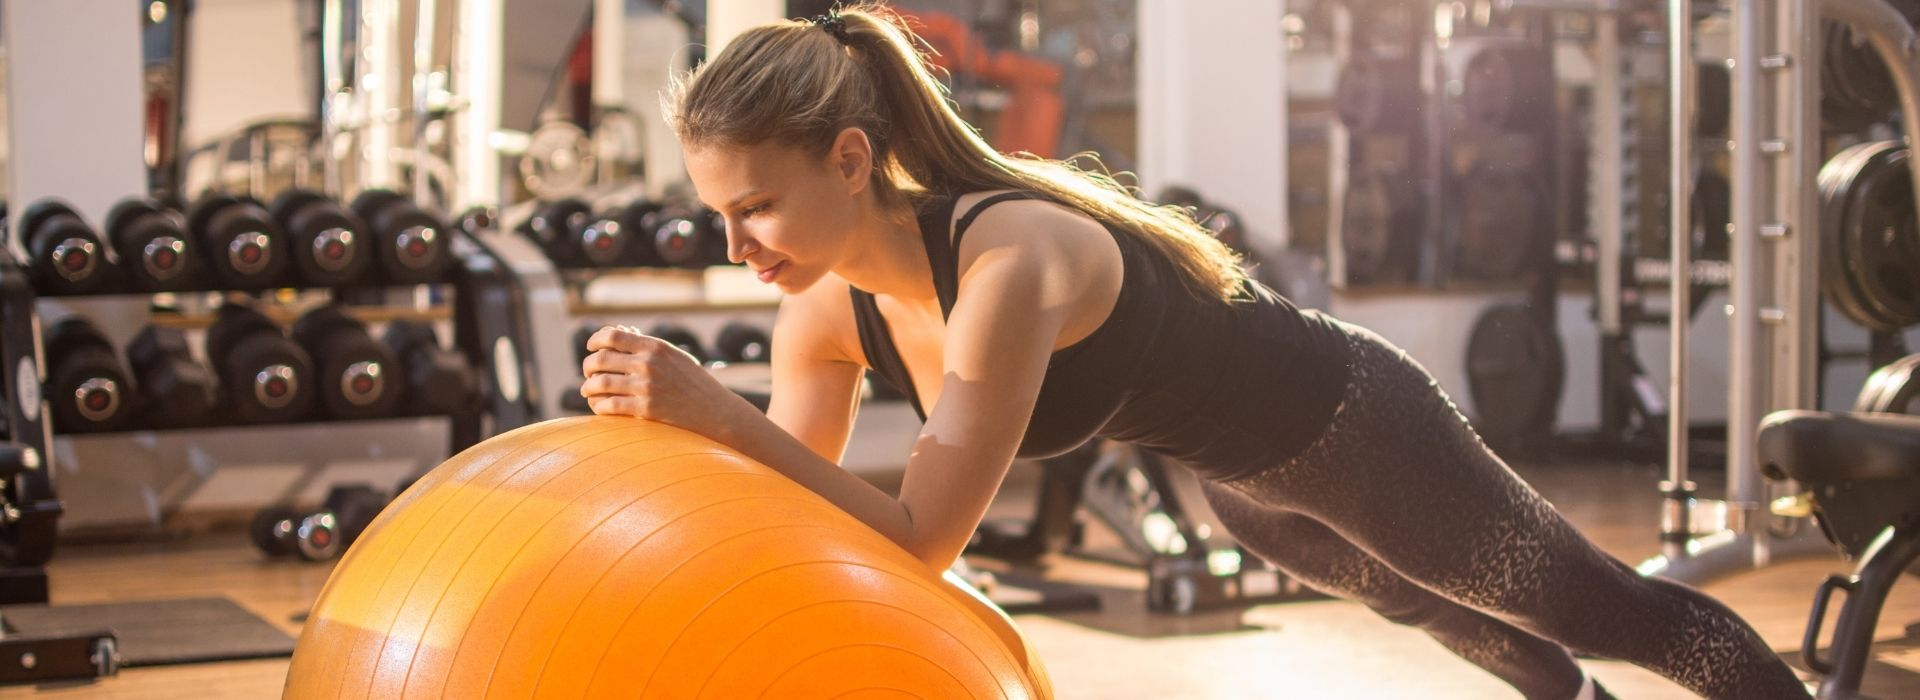 "Benefits of Using a ""Stability Ball"" in Your Training"